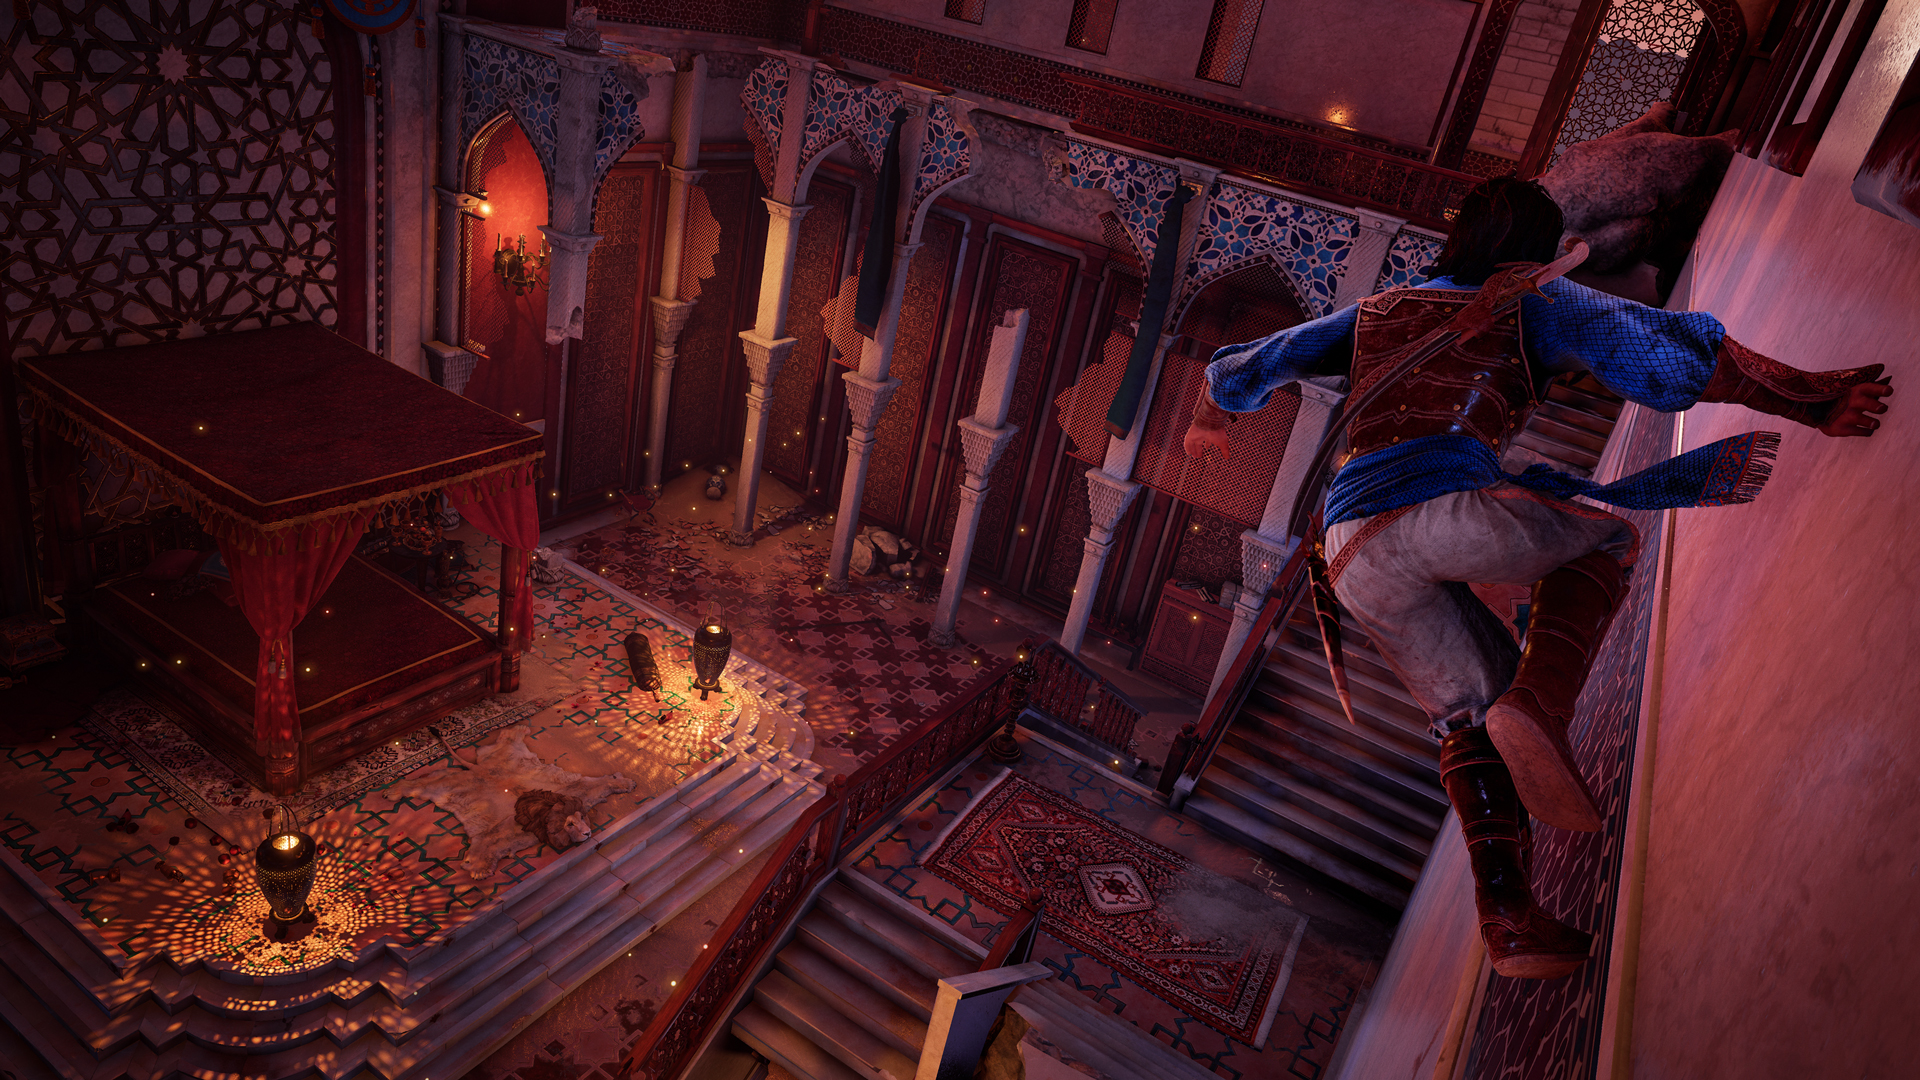 prince of persia sands of time remake graphical update, prince of persia sands of time graphics